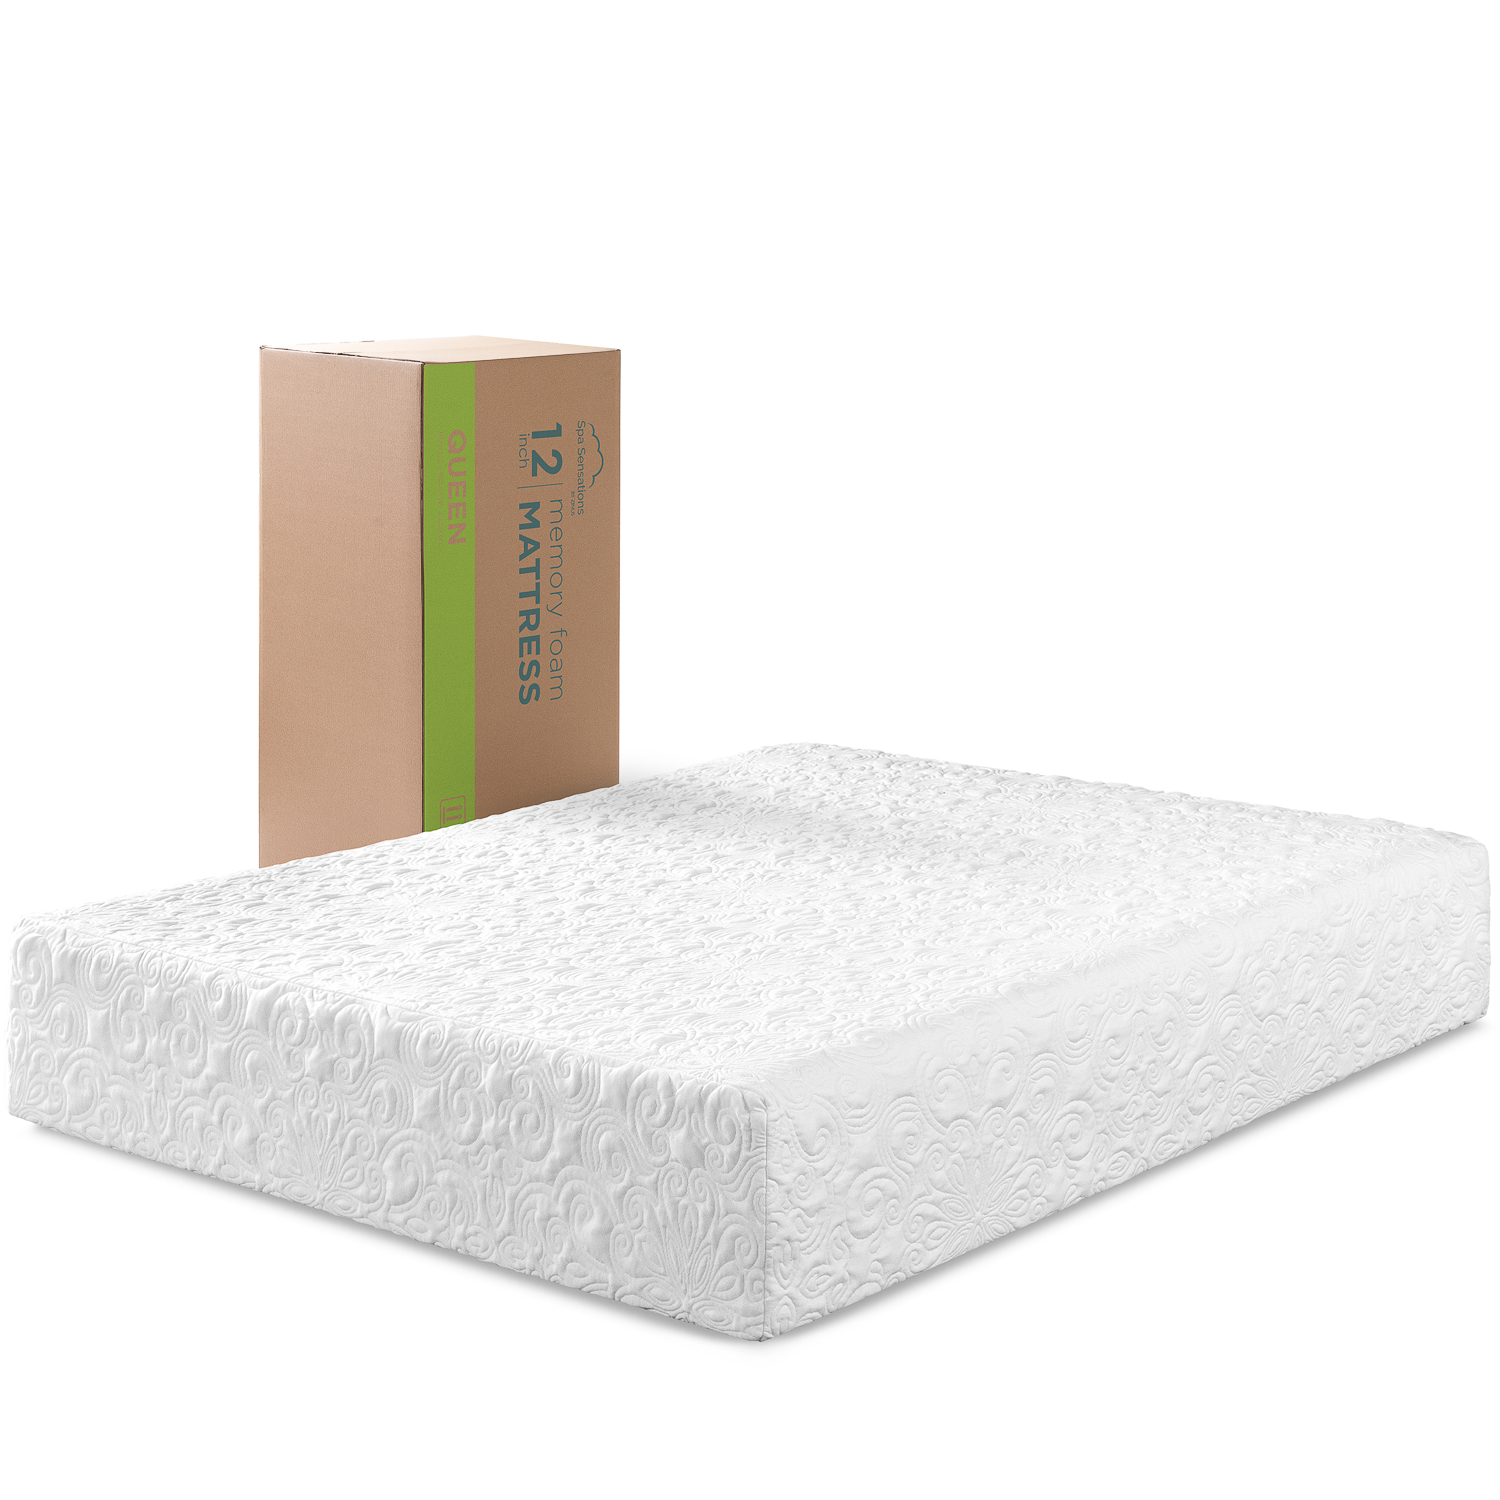 Spa Sensations By Zinus 12 Theratouch Memory Foam Mattress Queen